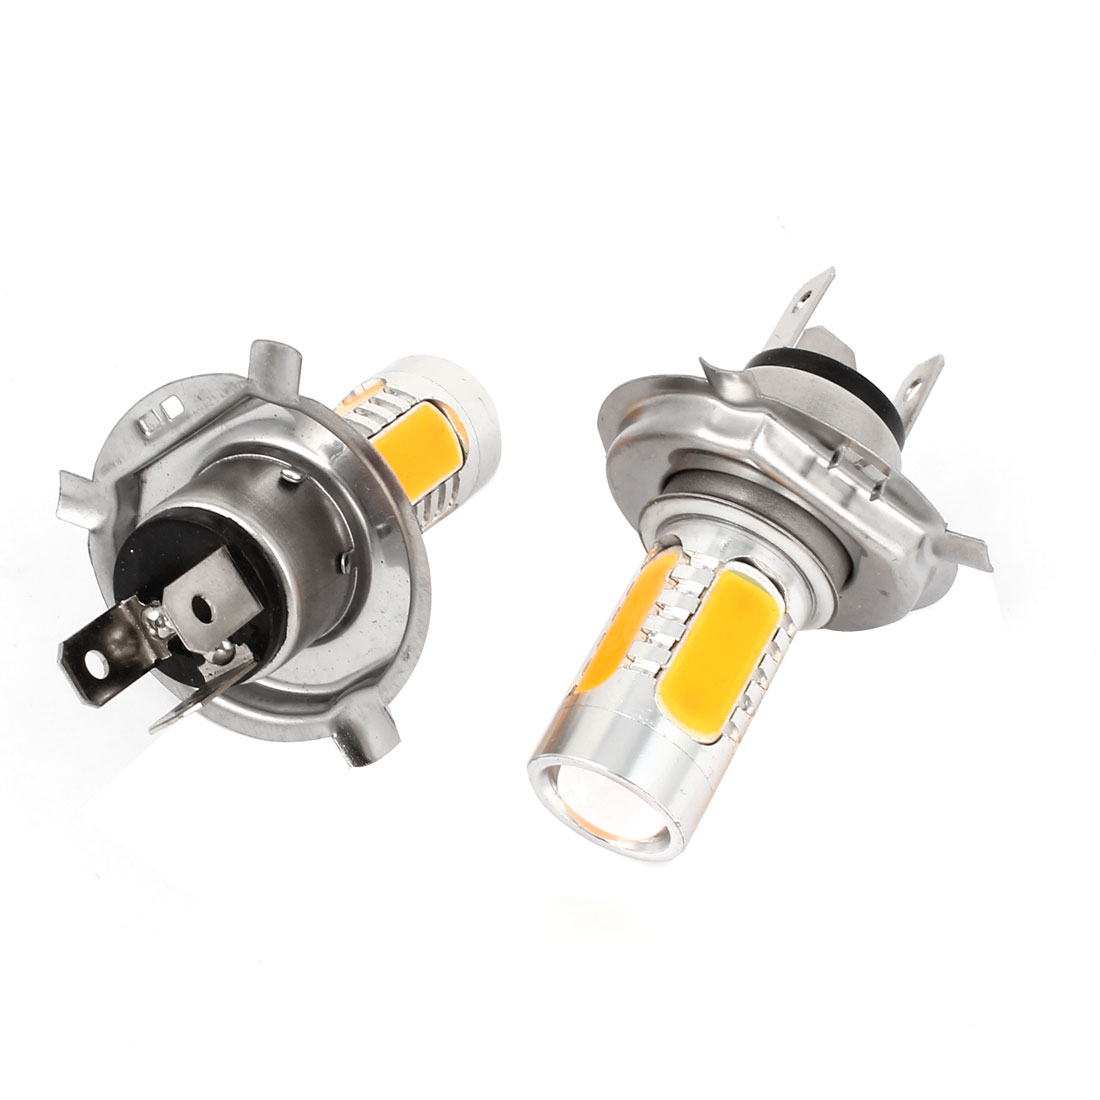 Pair 5 SMD LED Lens H4 DRL Daytime Driving Light Foglamp Lamp Amber 7.5W